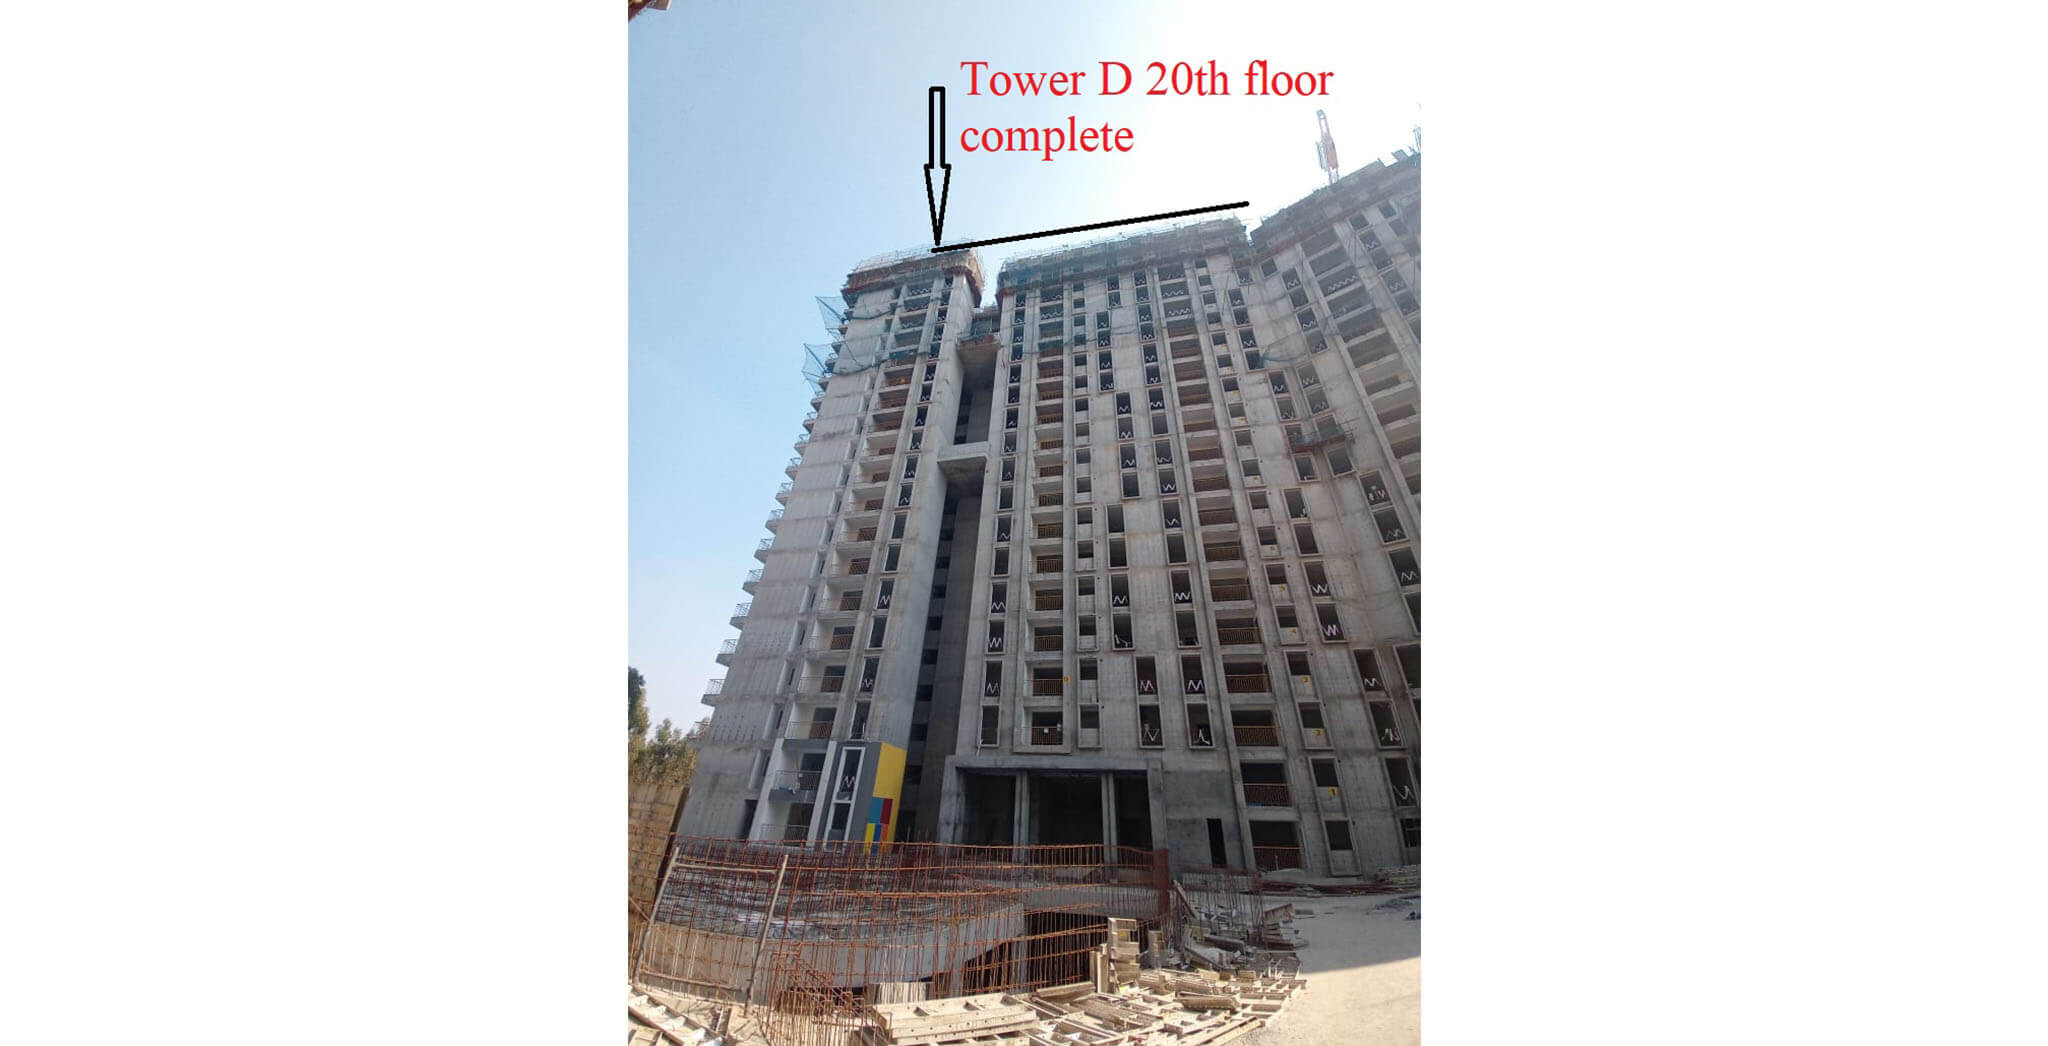 Mar 2021 - Serene: Tower/Wing D—On casting of 20th floor slab, 17th March 2021